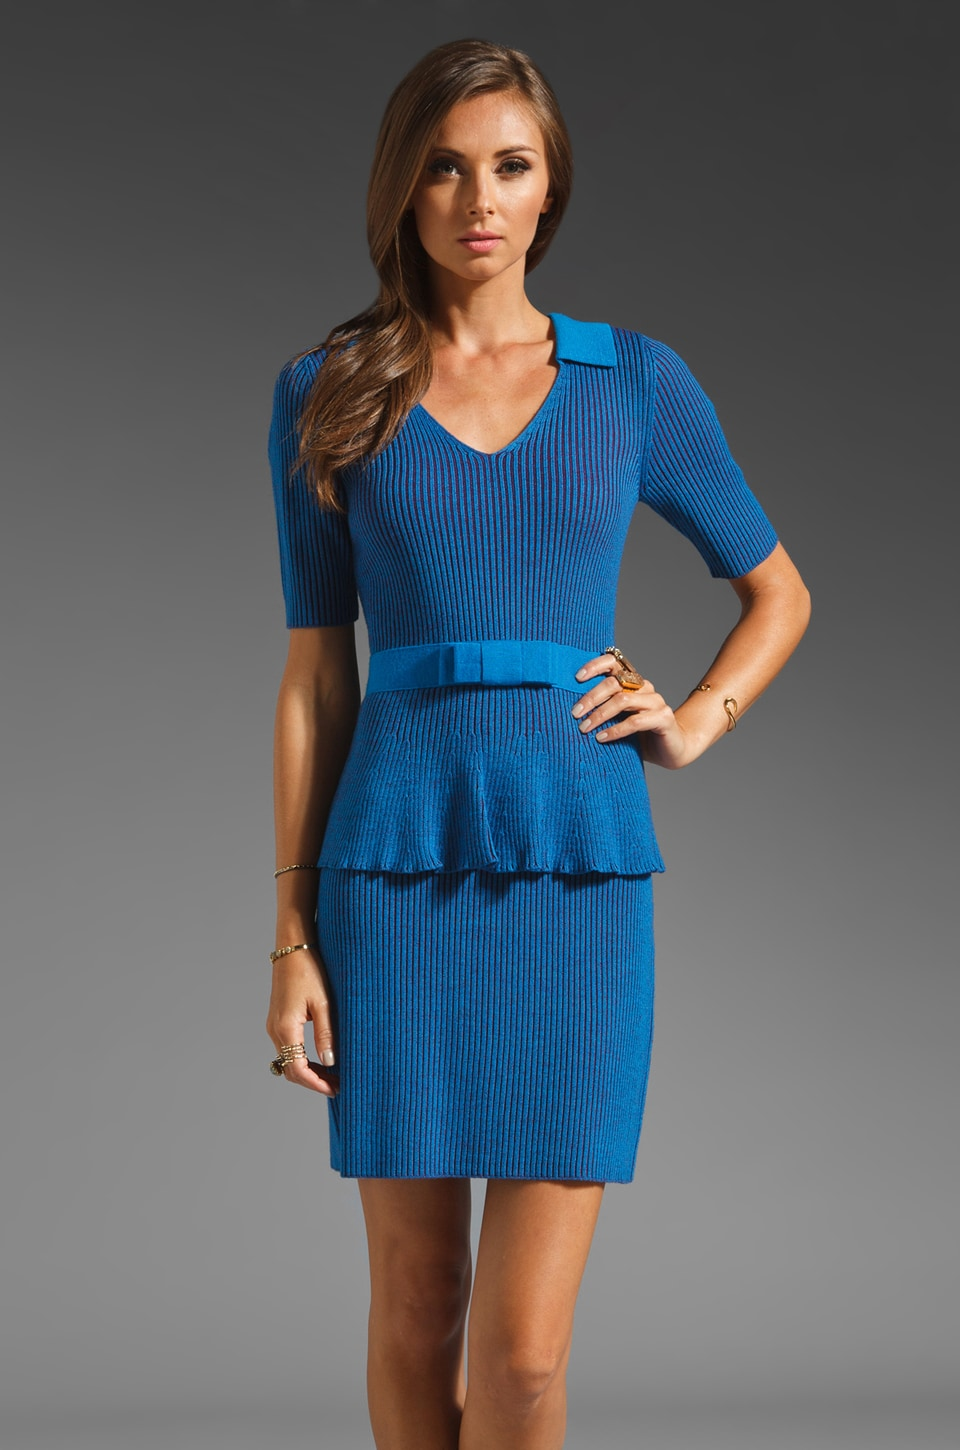 Nanette Lepore The Empress Rib Knit Dress in Cyan